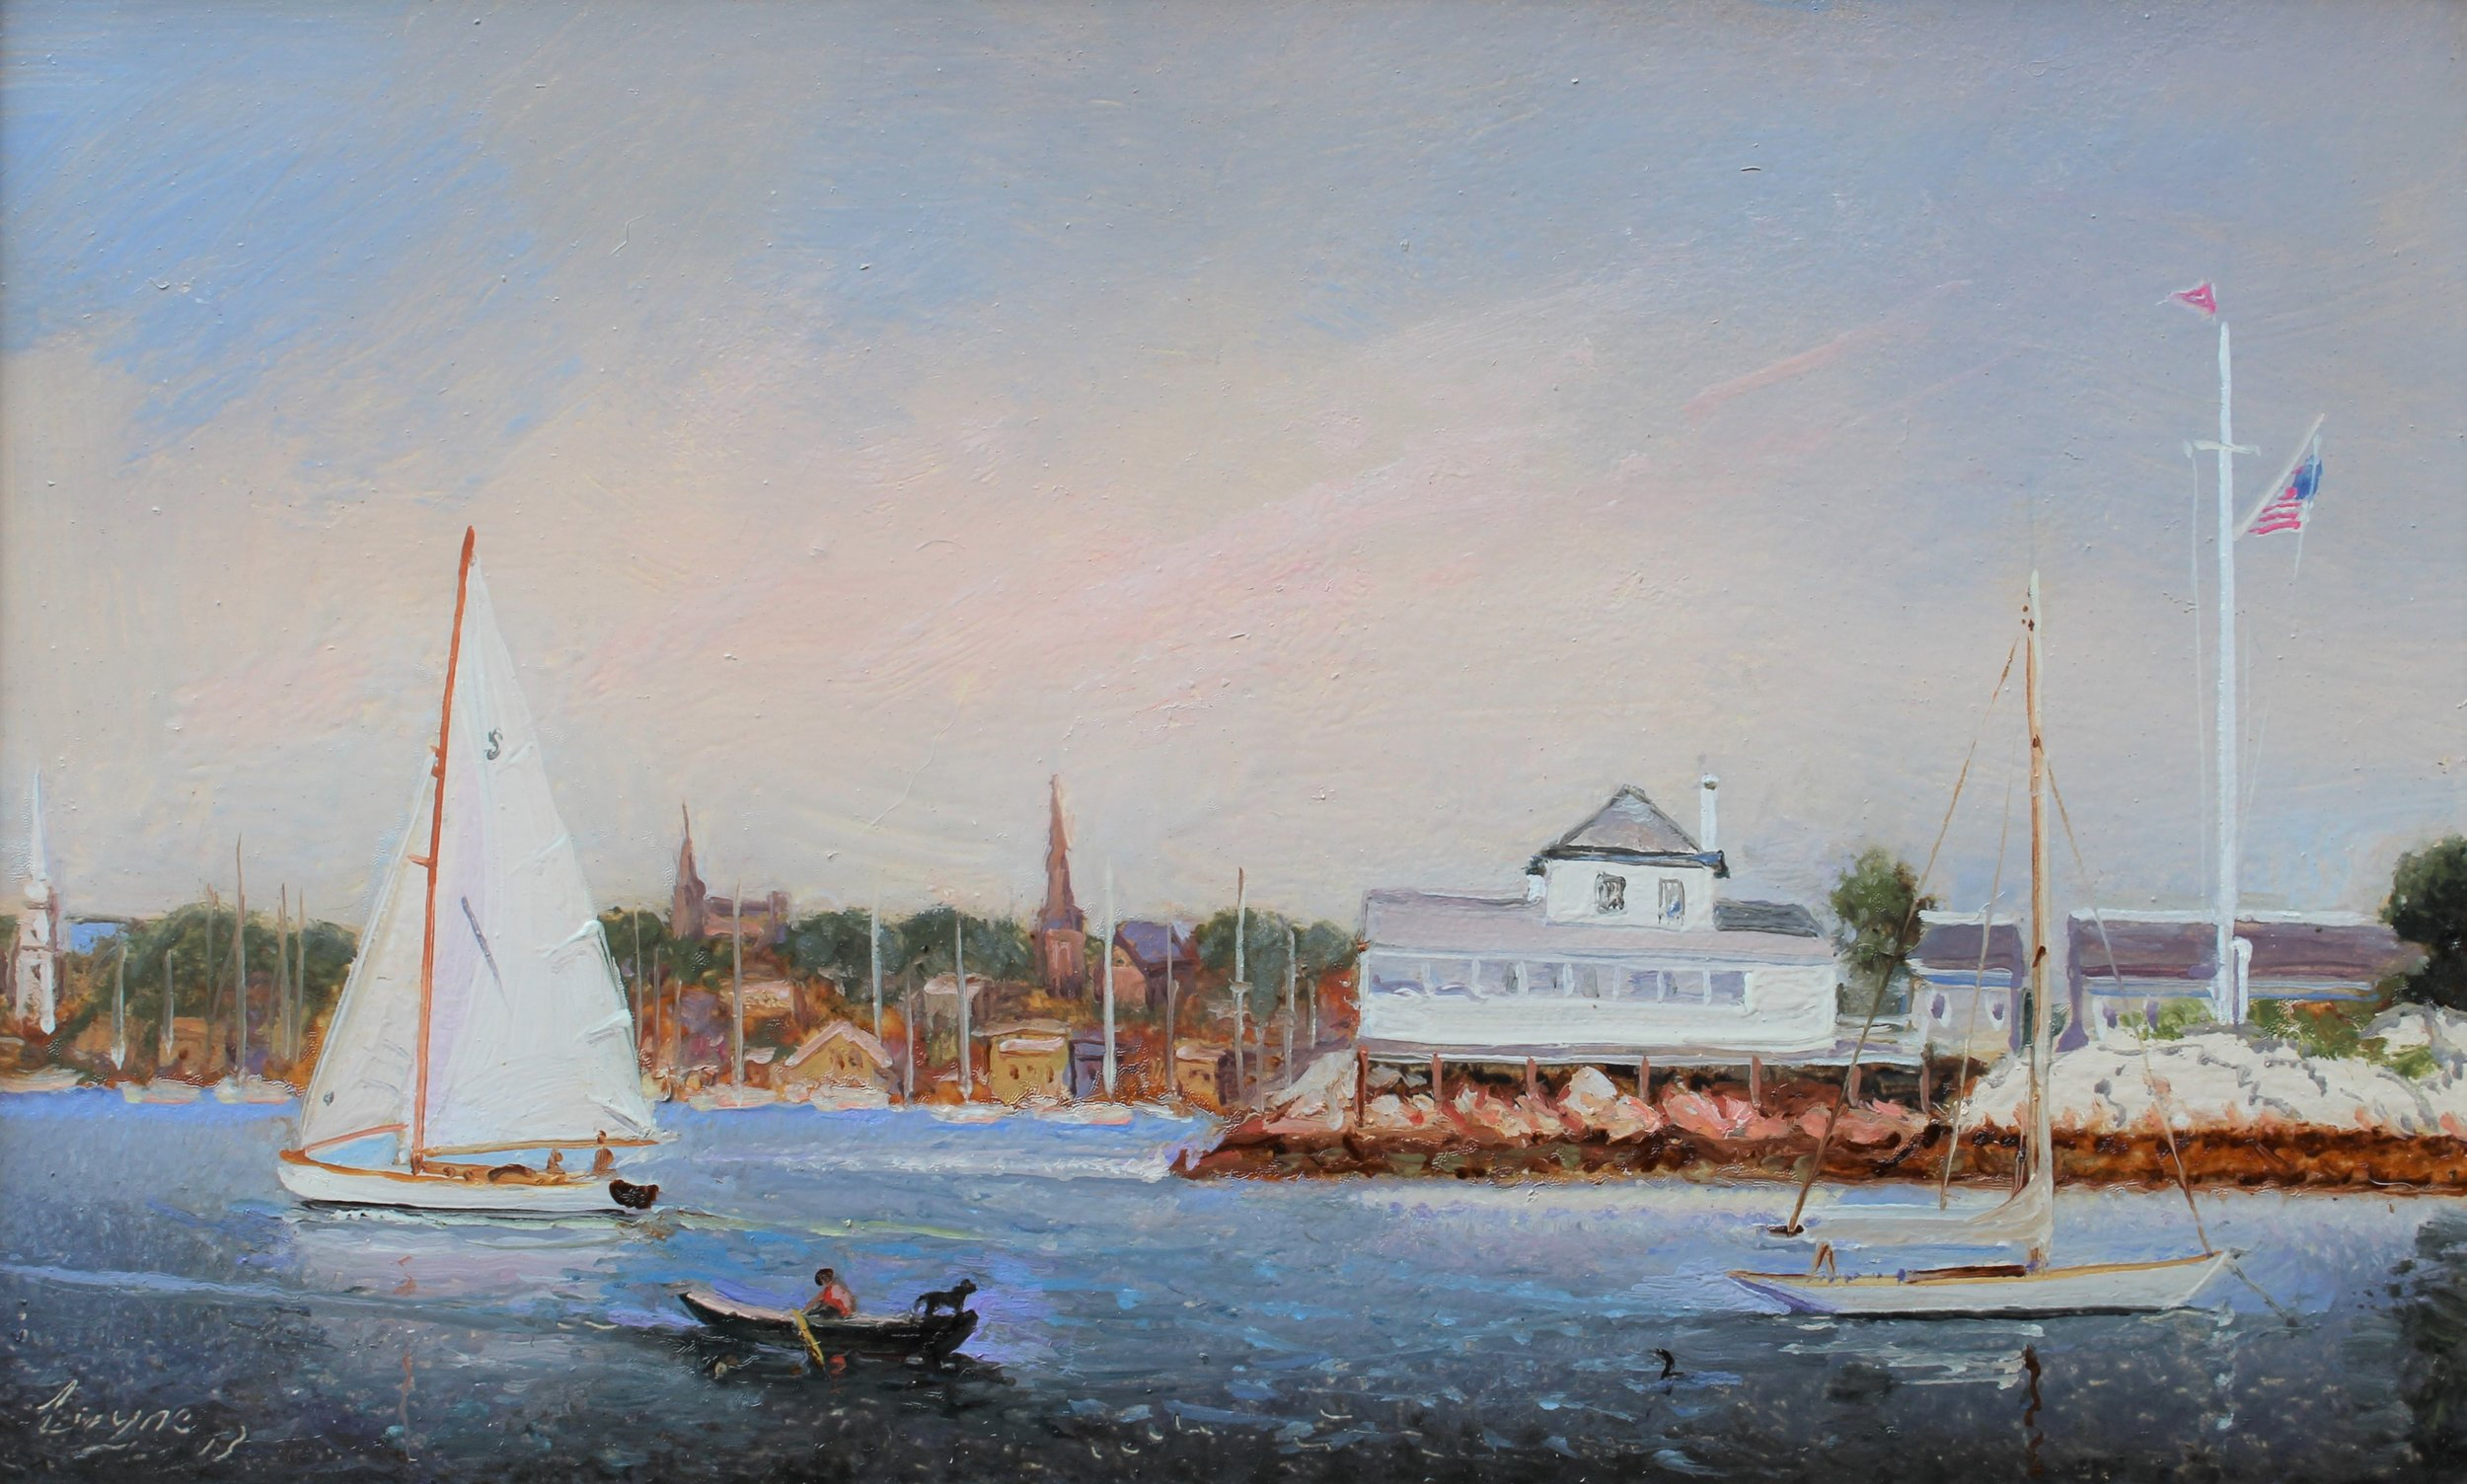 PETER ARGUIMBAU    Ida Lewis    The yacht club, named after the heroic lighthouse keeper, is located on Lime Rock in Newport Harbor. Ida Lewis is famous for saving the lives of sailors in danger. She first rescued four men in 1854, at the early age of twelve.  10 x 15 inches